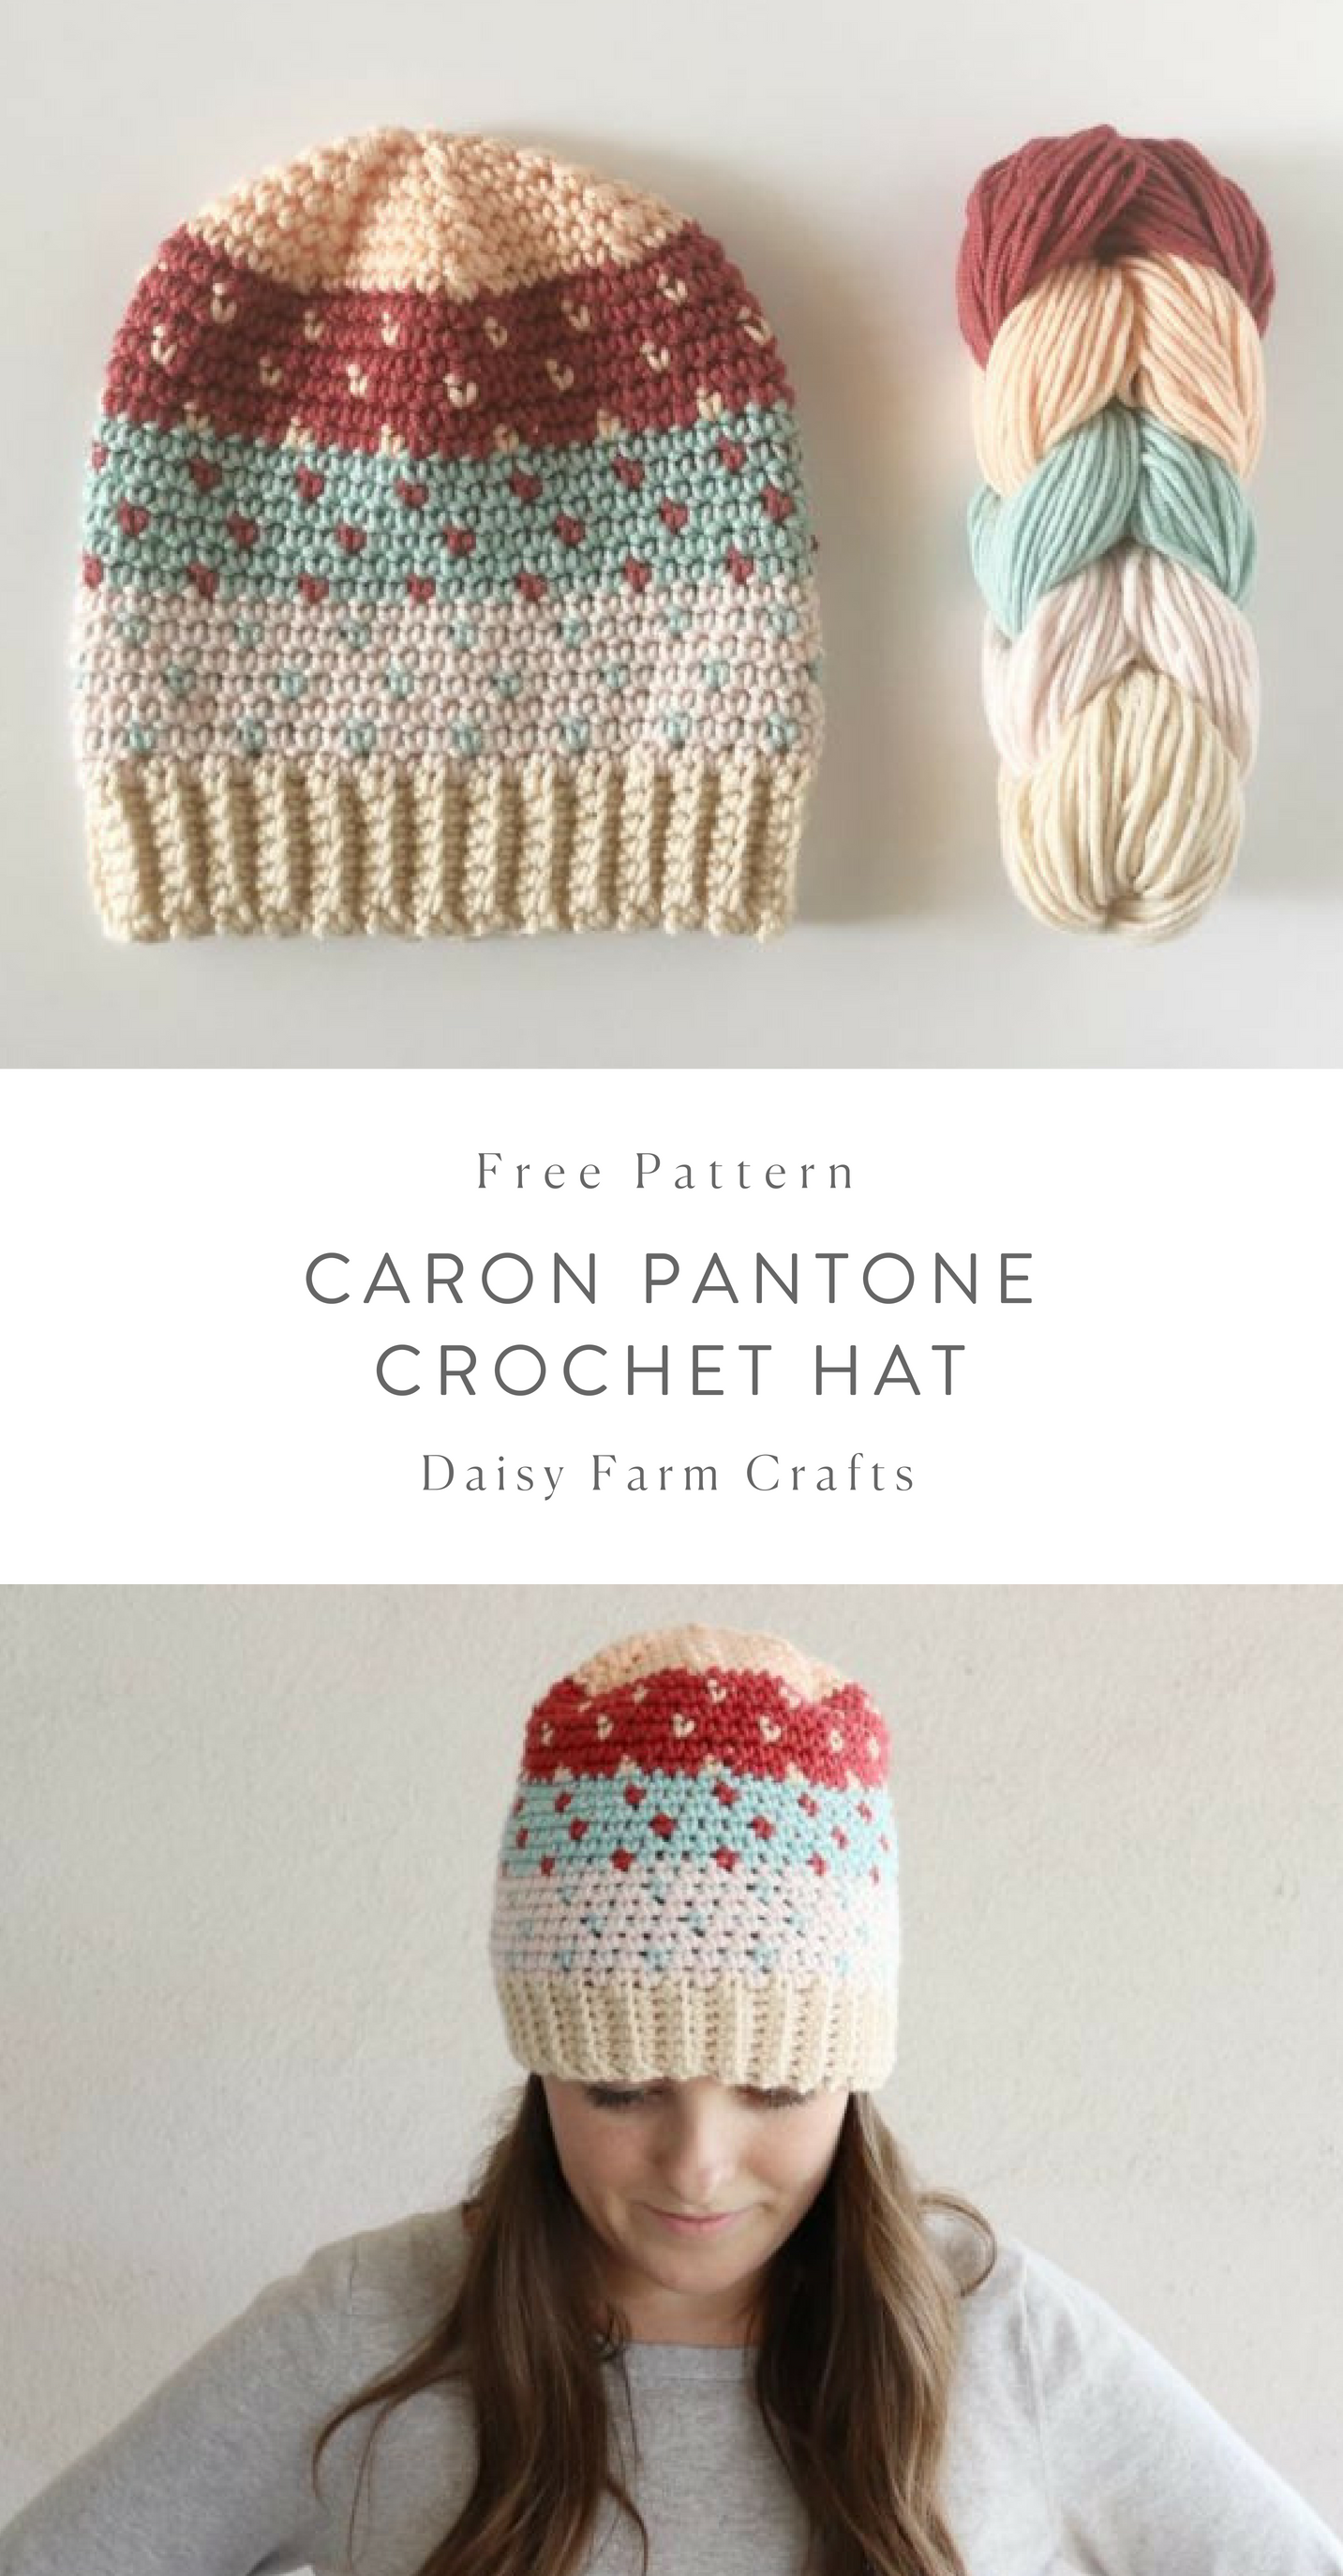 Free Pattern - Caron Pantone Crochet Hat #crochet | in stitches ...